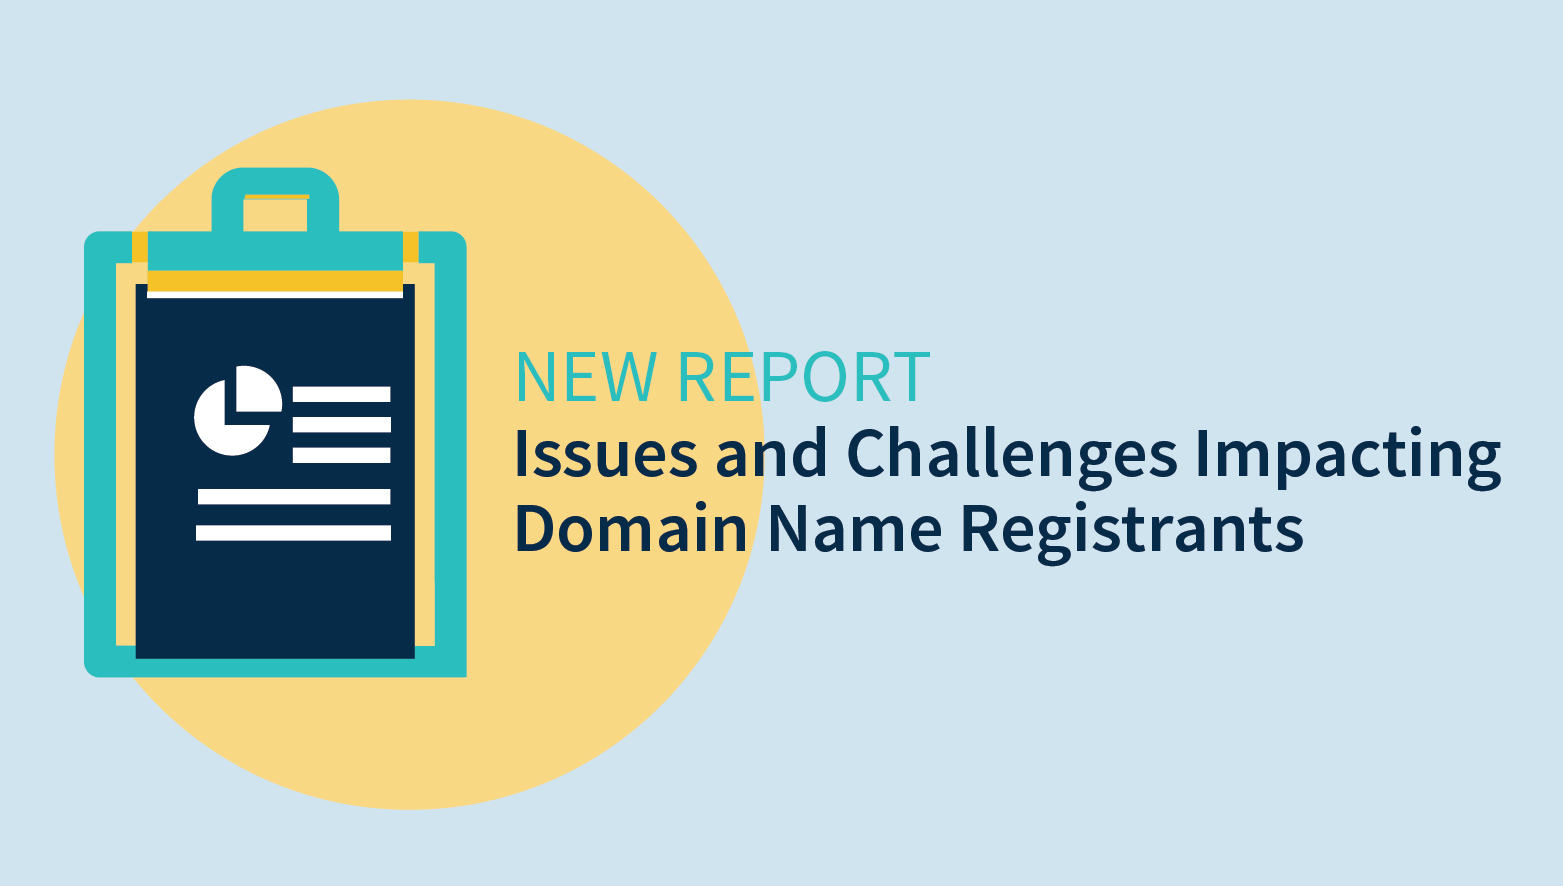 Domain name registrants issues challenges 1563x886 26sep18 en